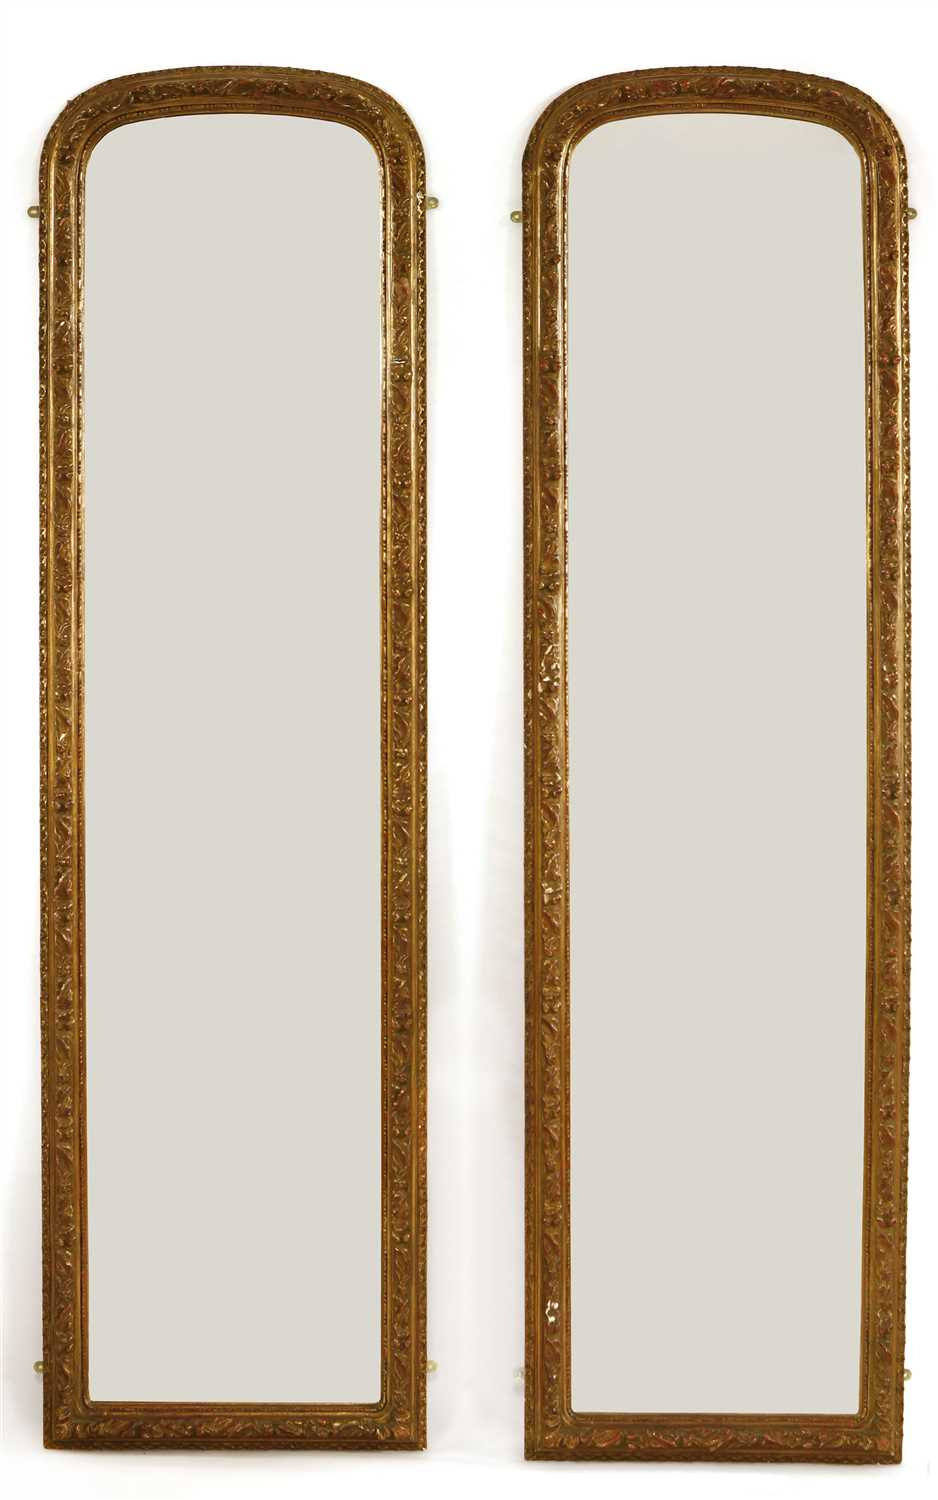 Lot 8-A pair of tall George III-style pier mirrors